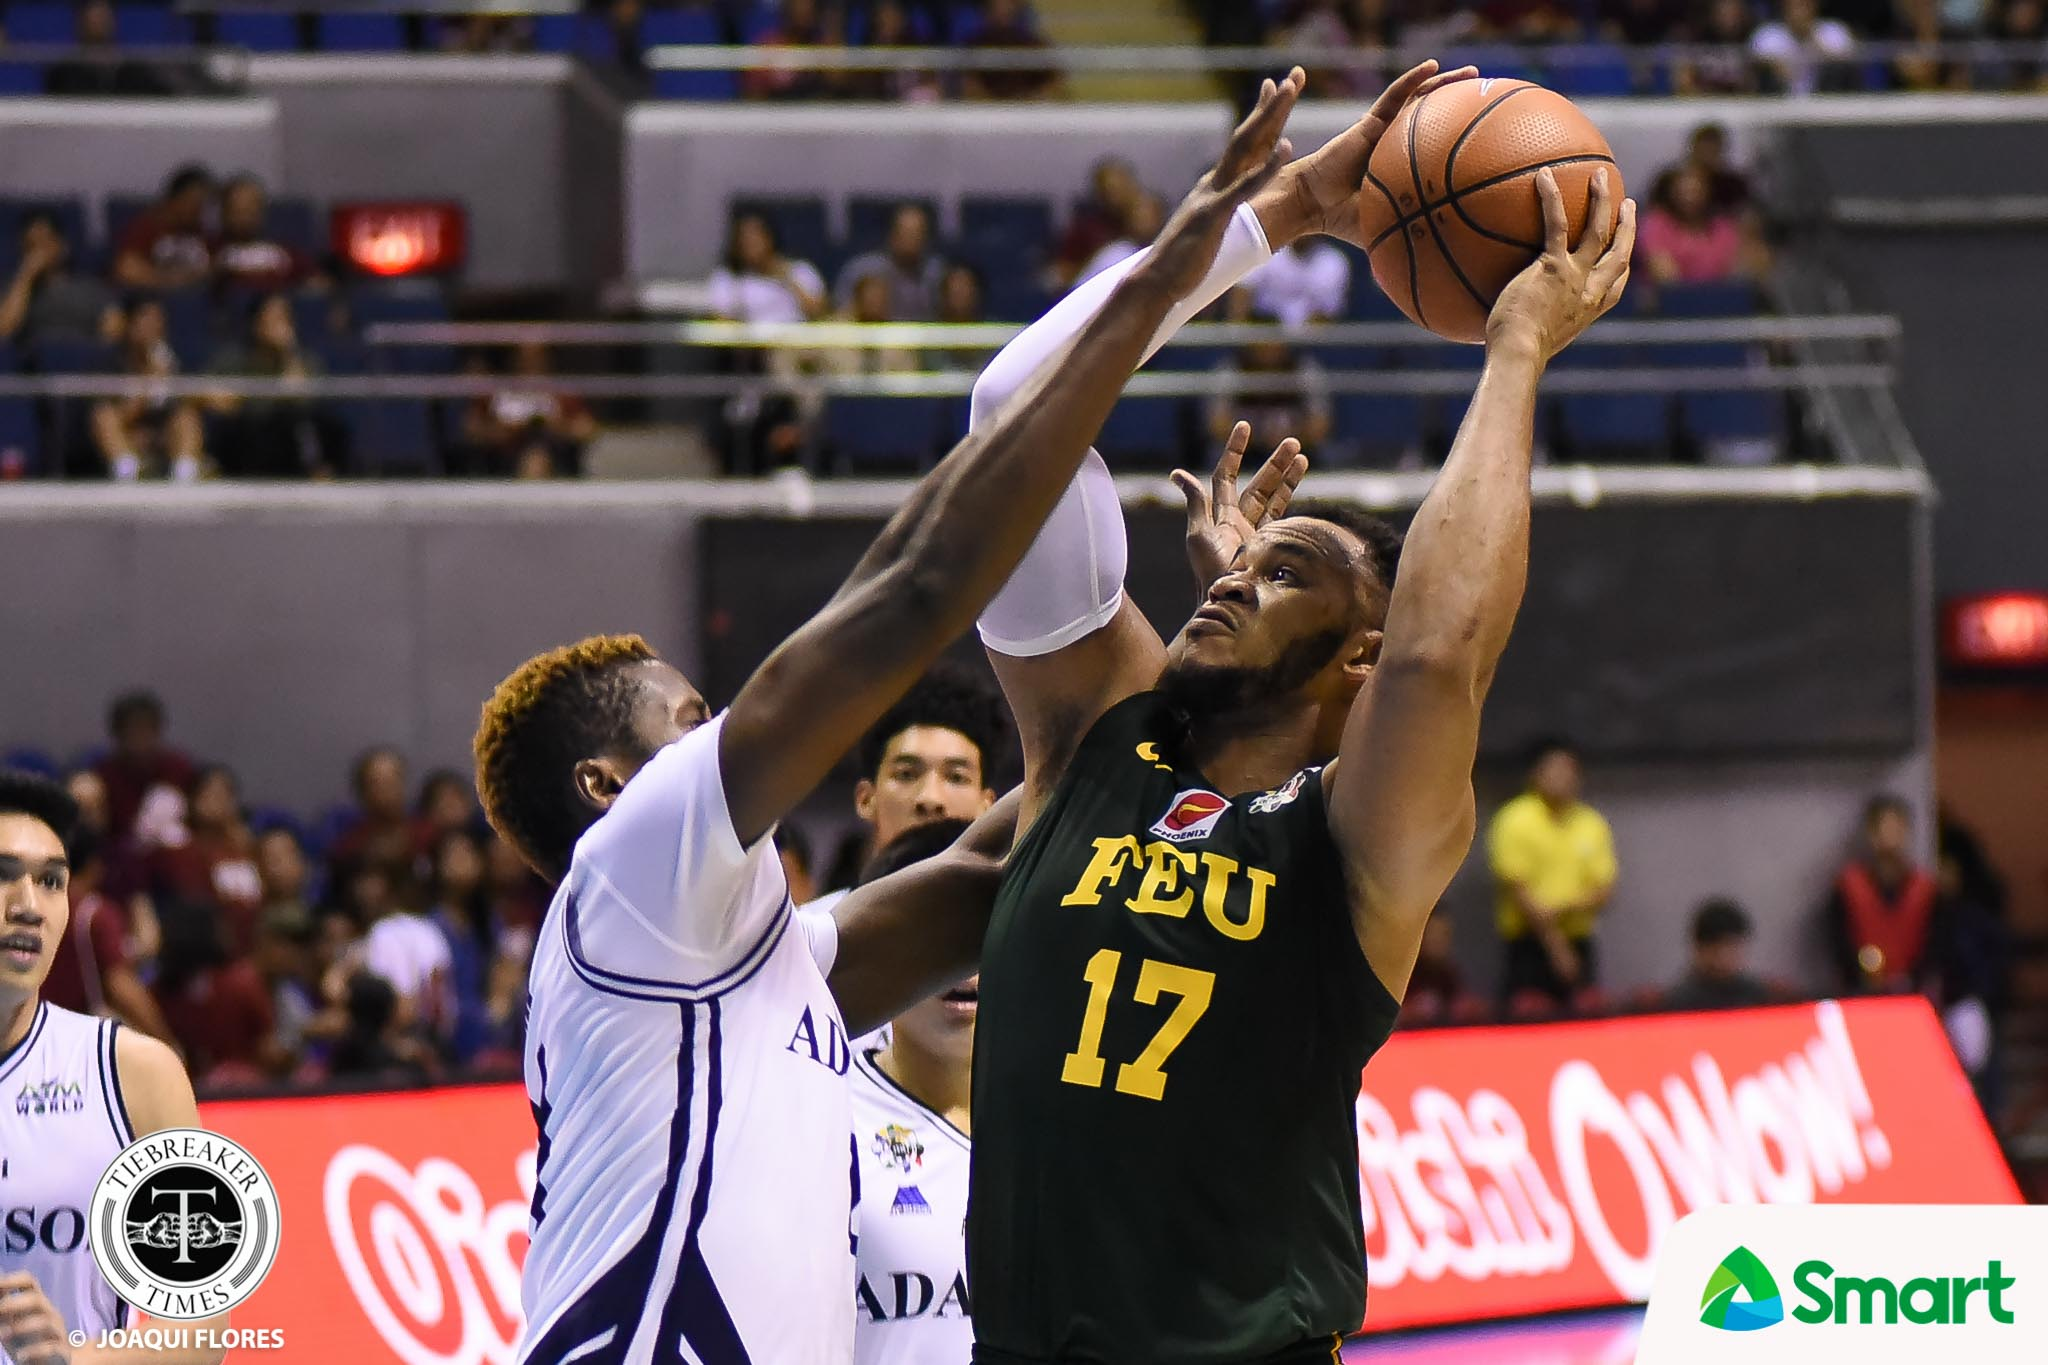 Philippine Sports News - Tiebreaker Times With their backs against the wall, Tamaraws played like brothers says Prince Orizu Basketball FEU News UAAP  UAAP Season 80 Men's Basketball UAAP Season 80 Richard Escoto Prince Orizu Olsen Racela FEU Men's Basketball Arvin Tolentino